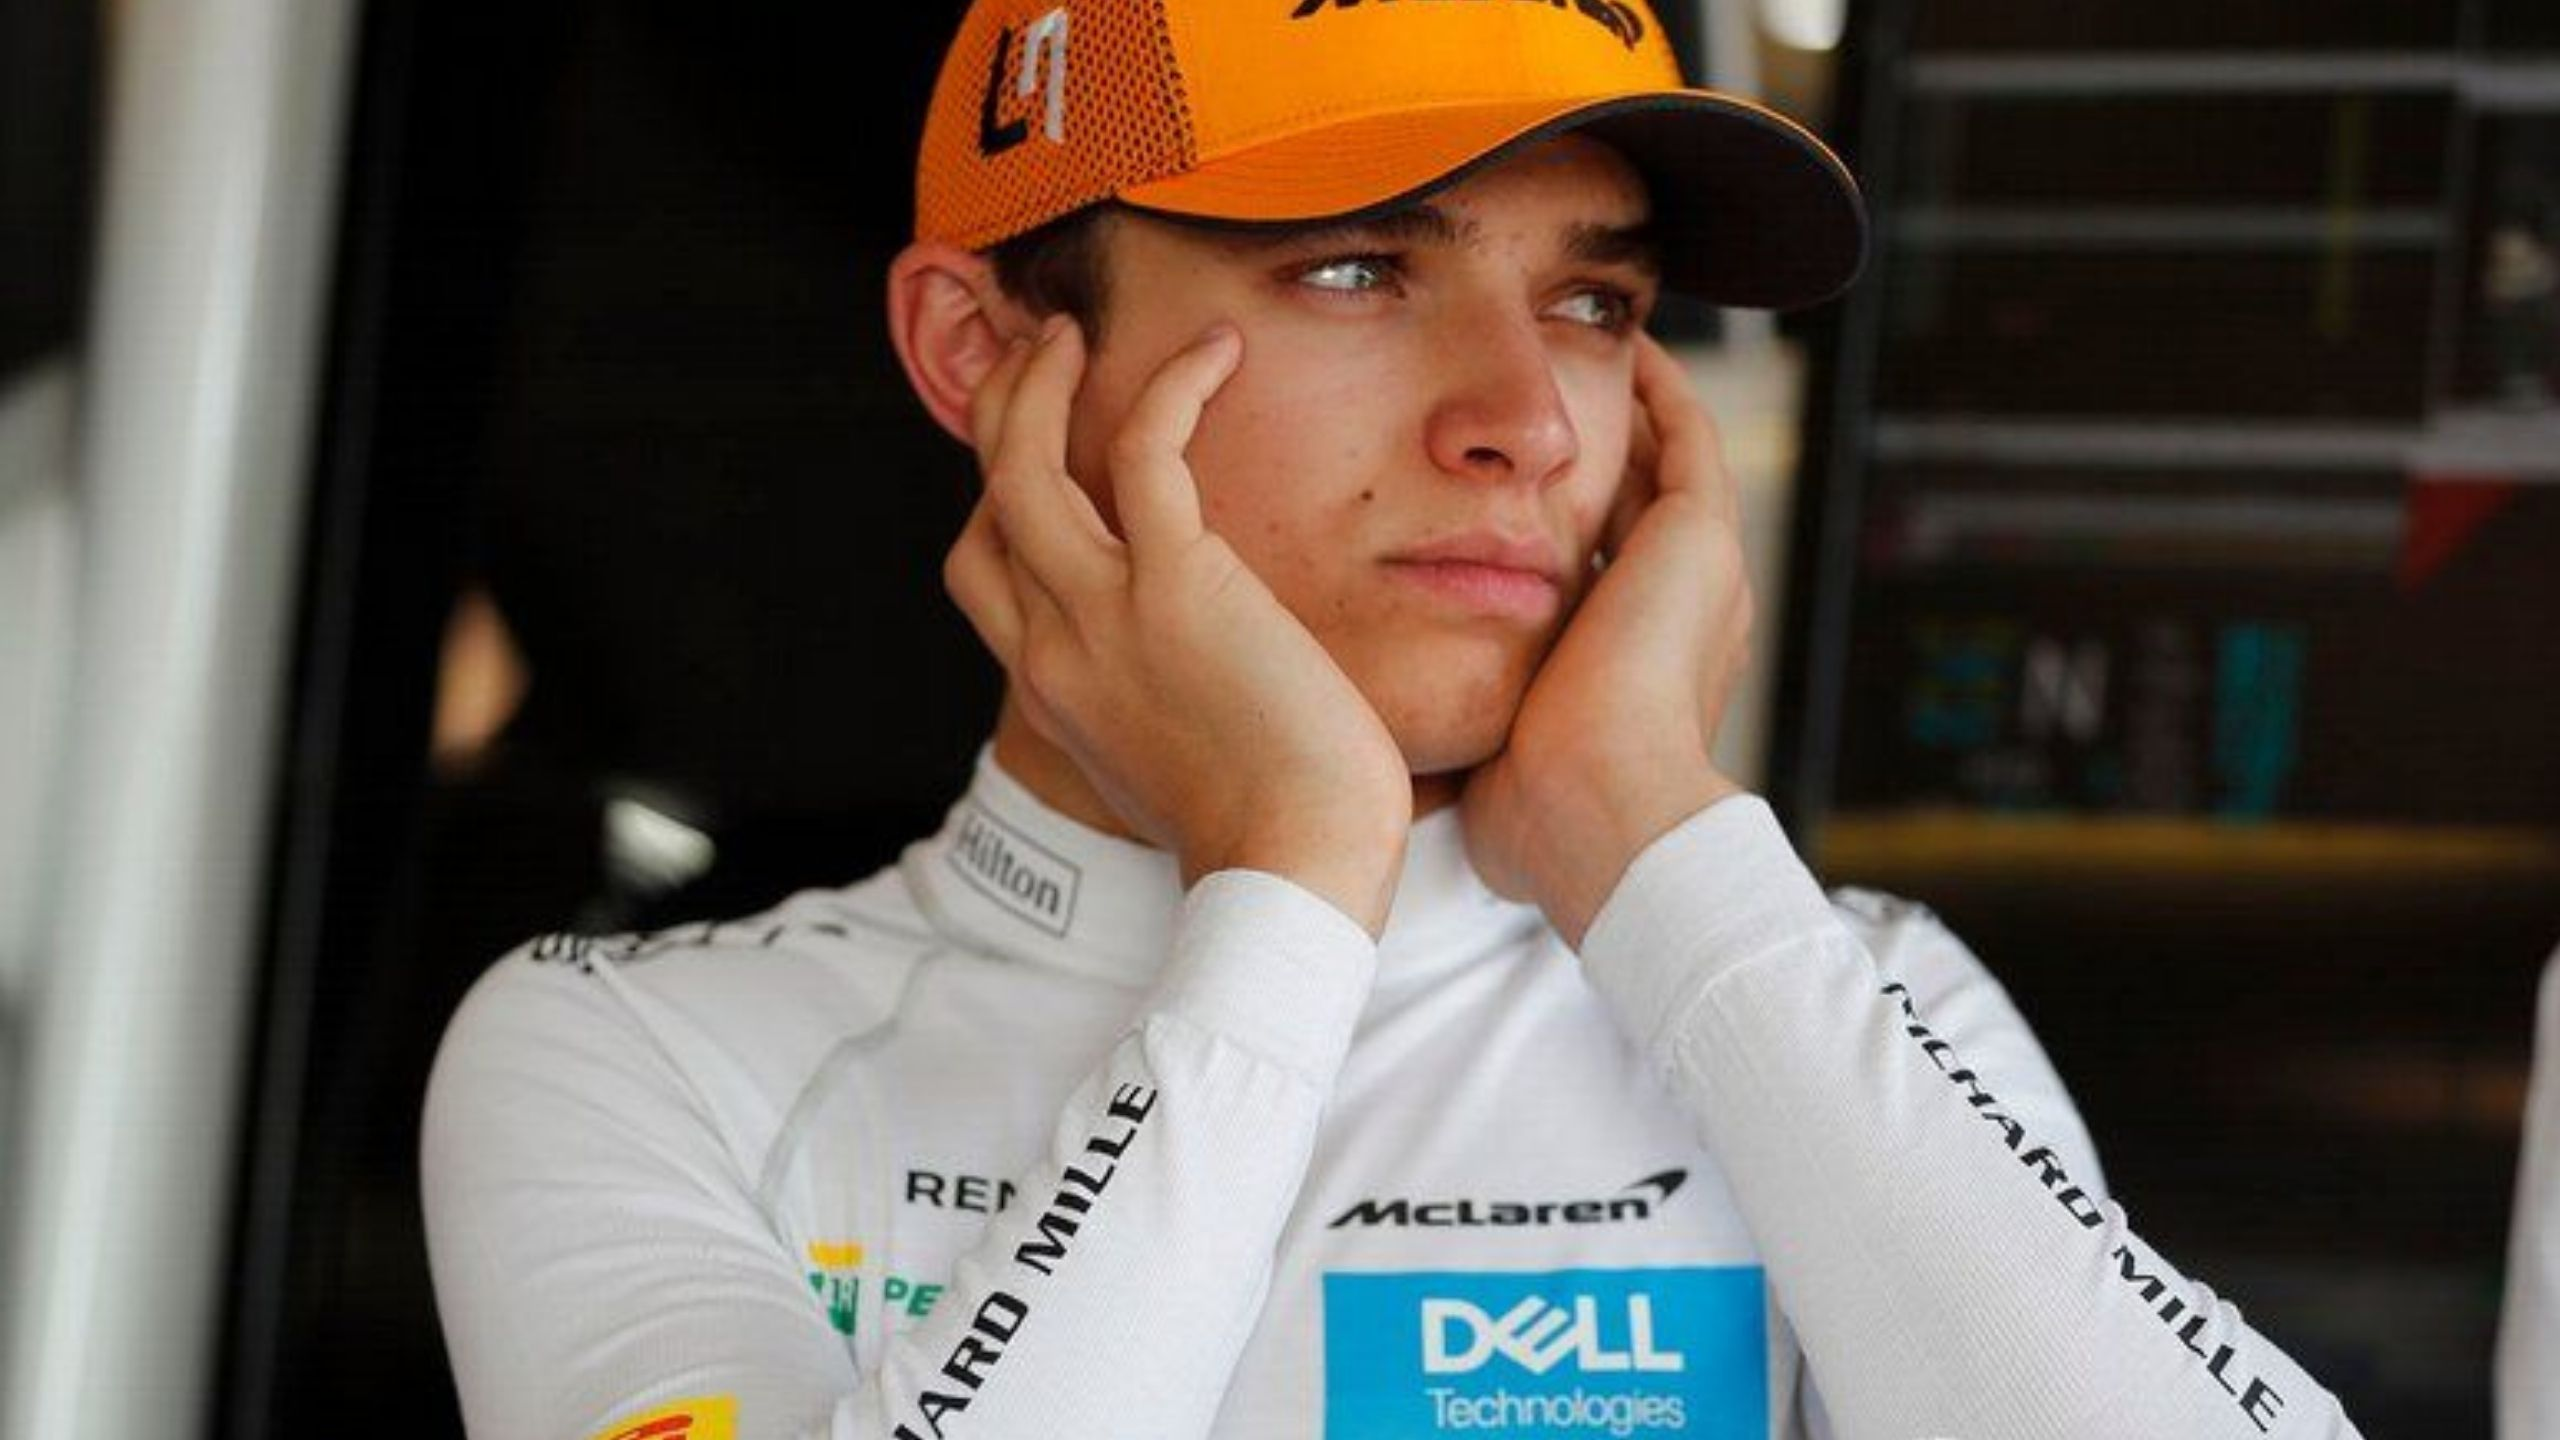 """""""Yesterday I lost my sense of taste and smell"""" - Lando Norris tests positive for Covid-19 in Dubai"""